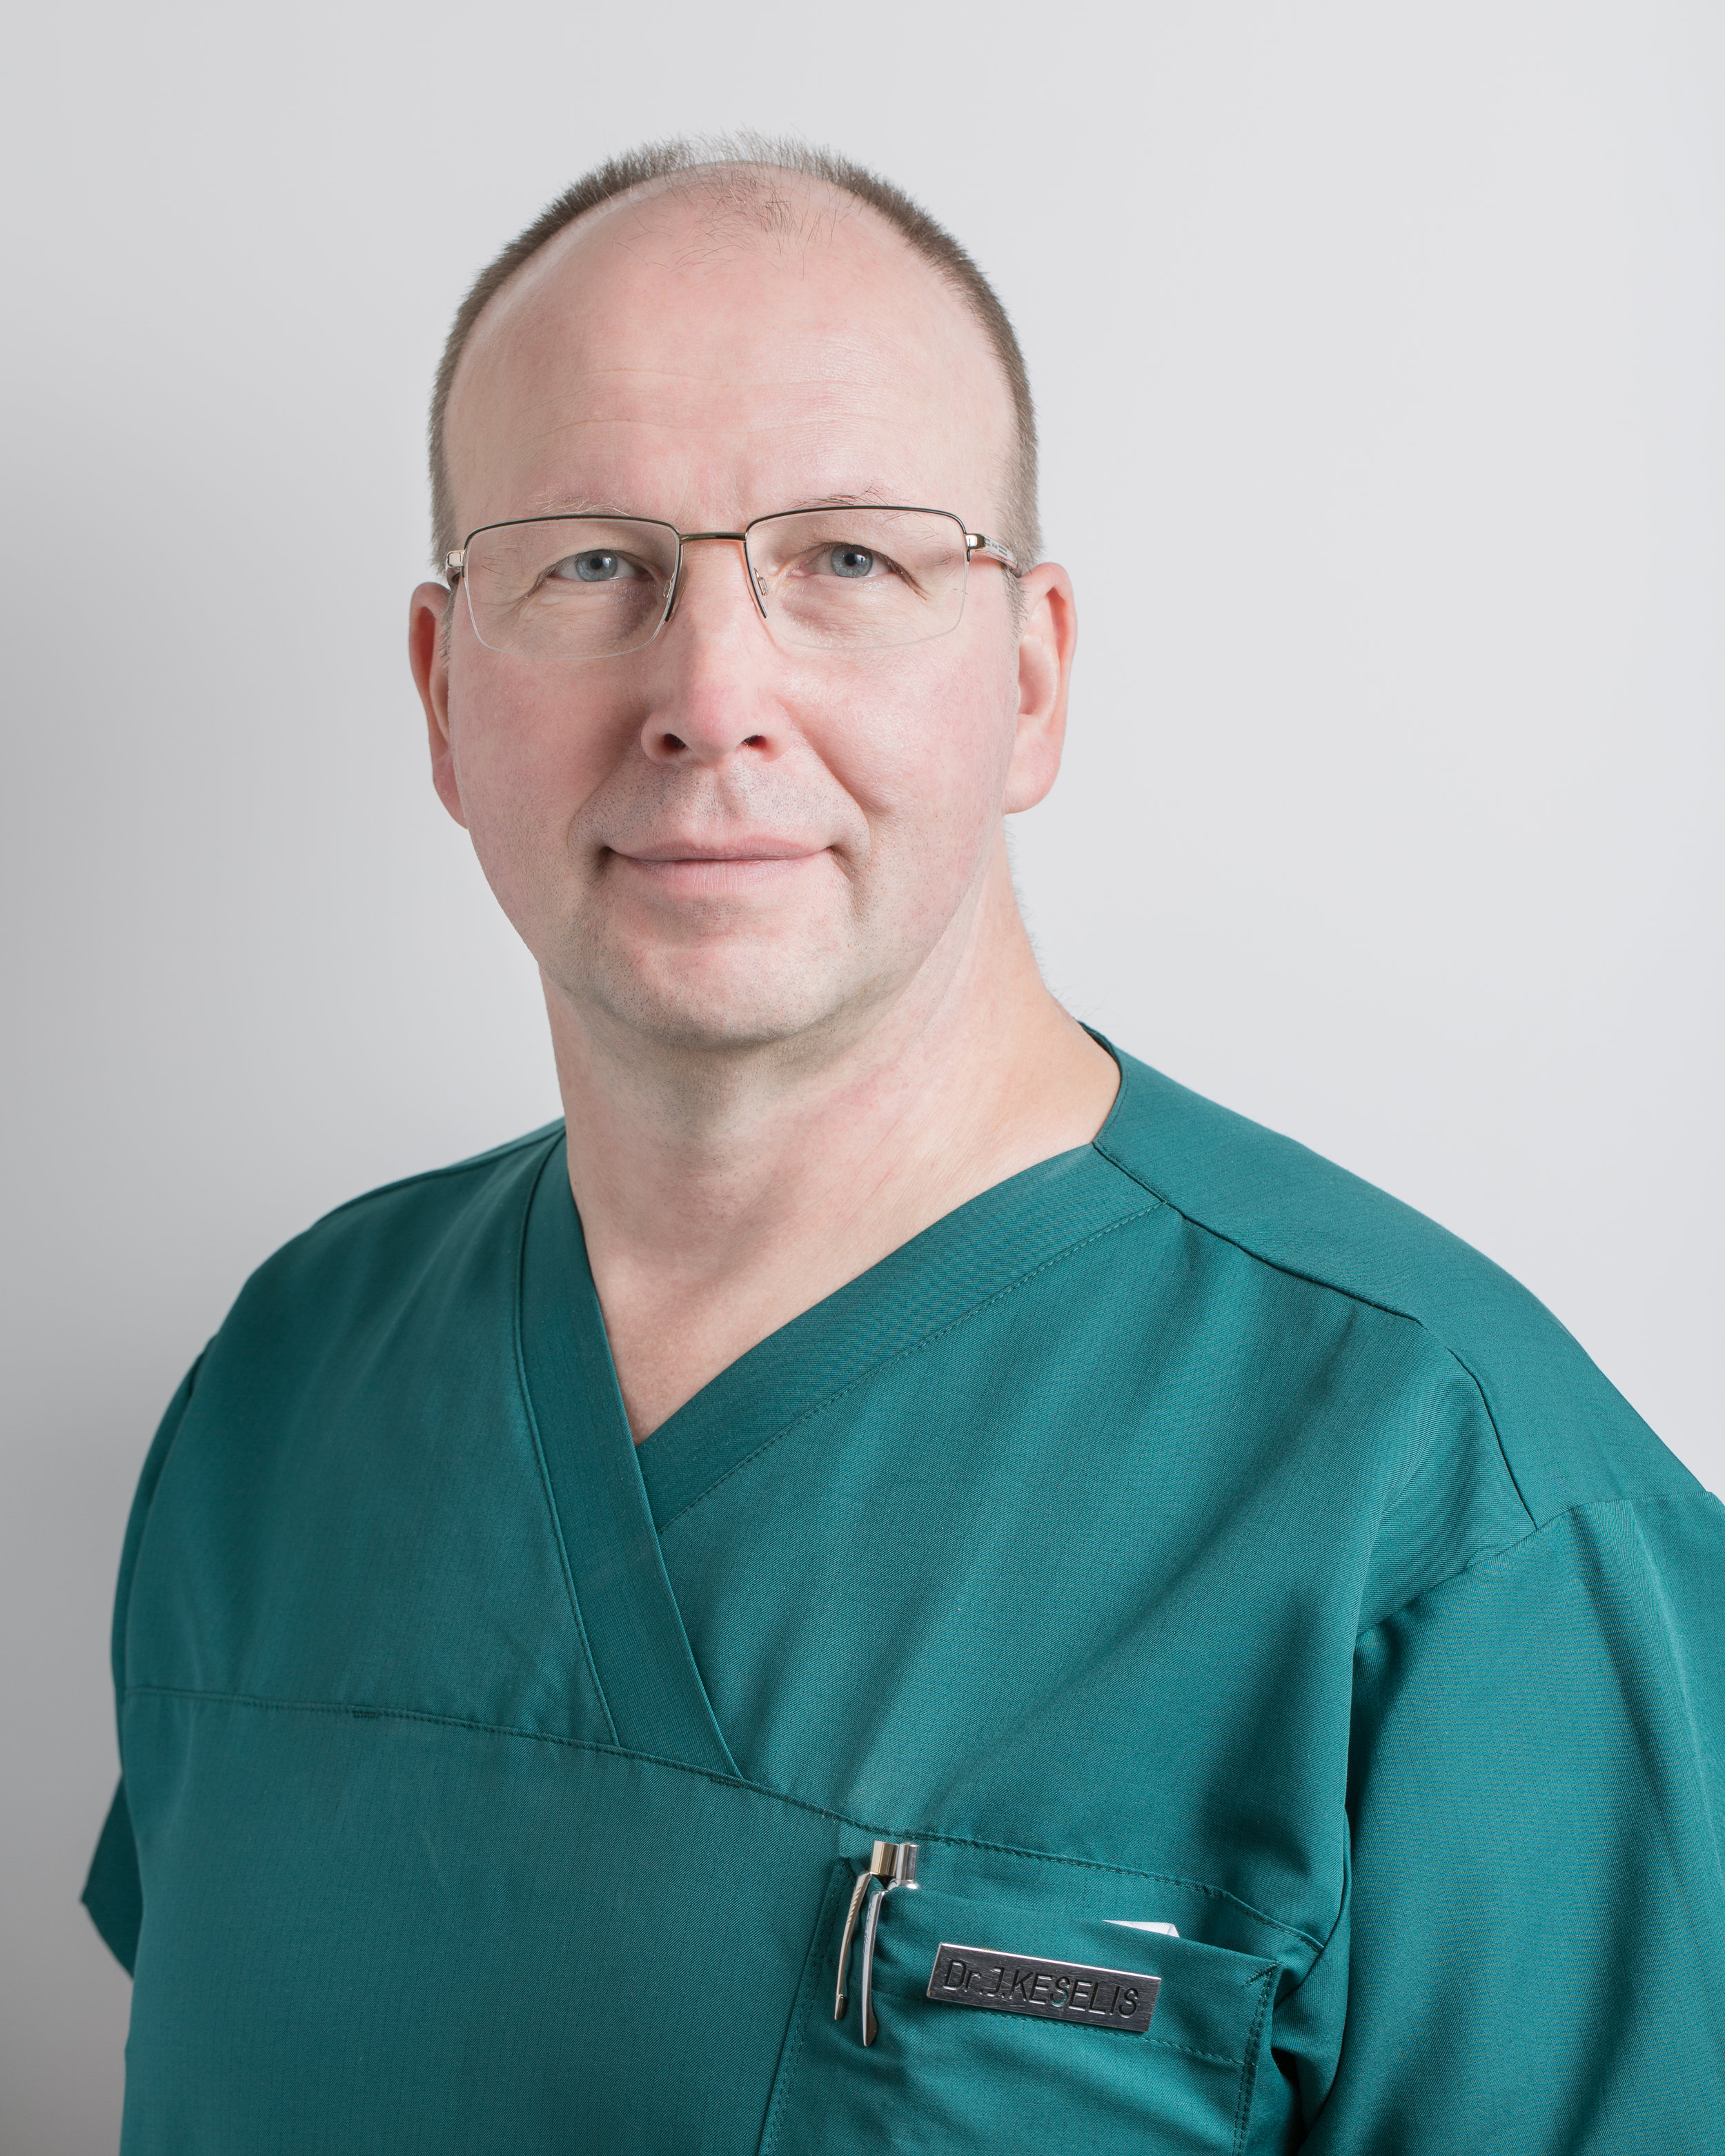 Jānis Keselis - Jānis Keselis is one of the leading orthopedic traumatologists in Latvia with a 34 year experience.Specilizes in hip and knee joint endoprosthetics and arthroscopic surgery.Have gained experience in USA, Germany and England.Since 1987 runs the traumatology department in Rīgas 2. hospital.